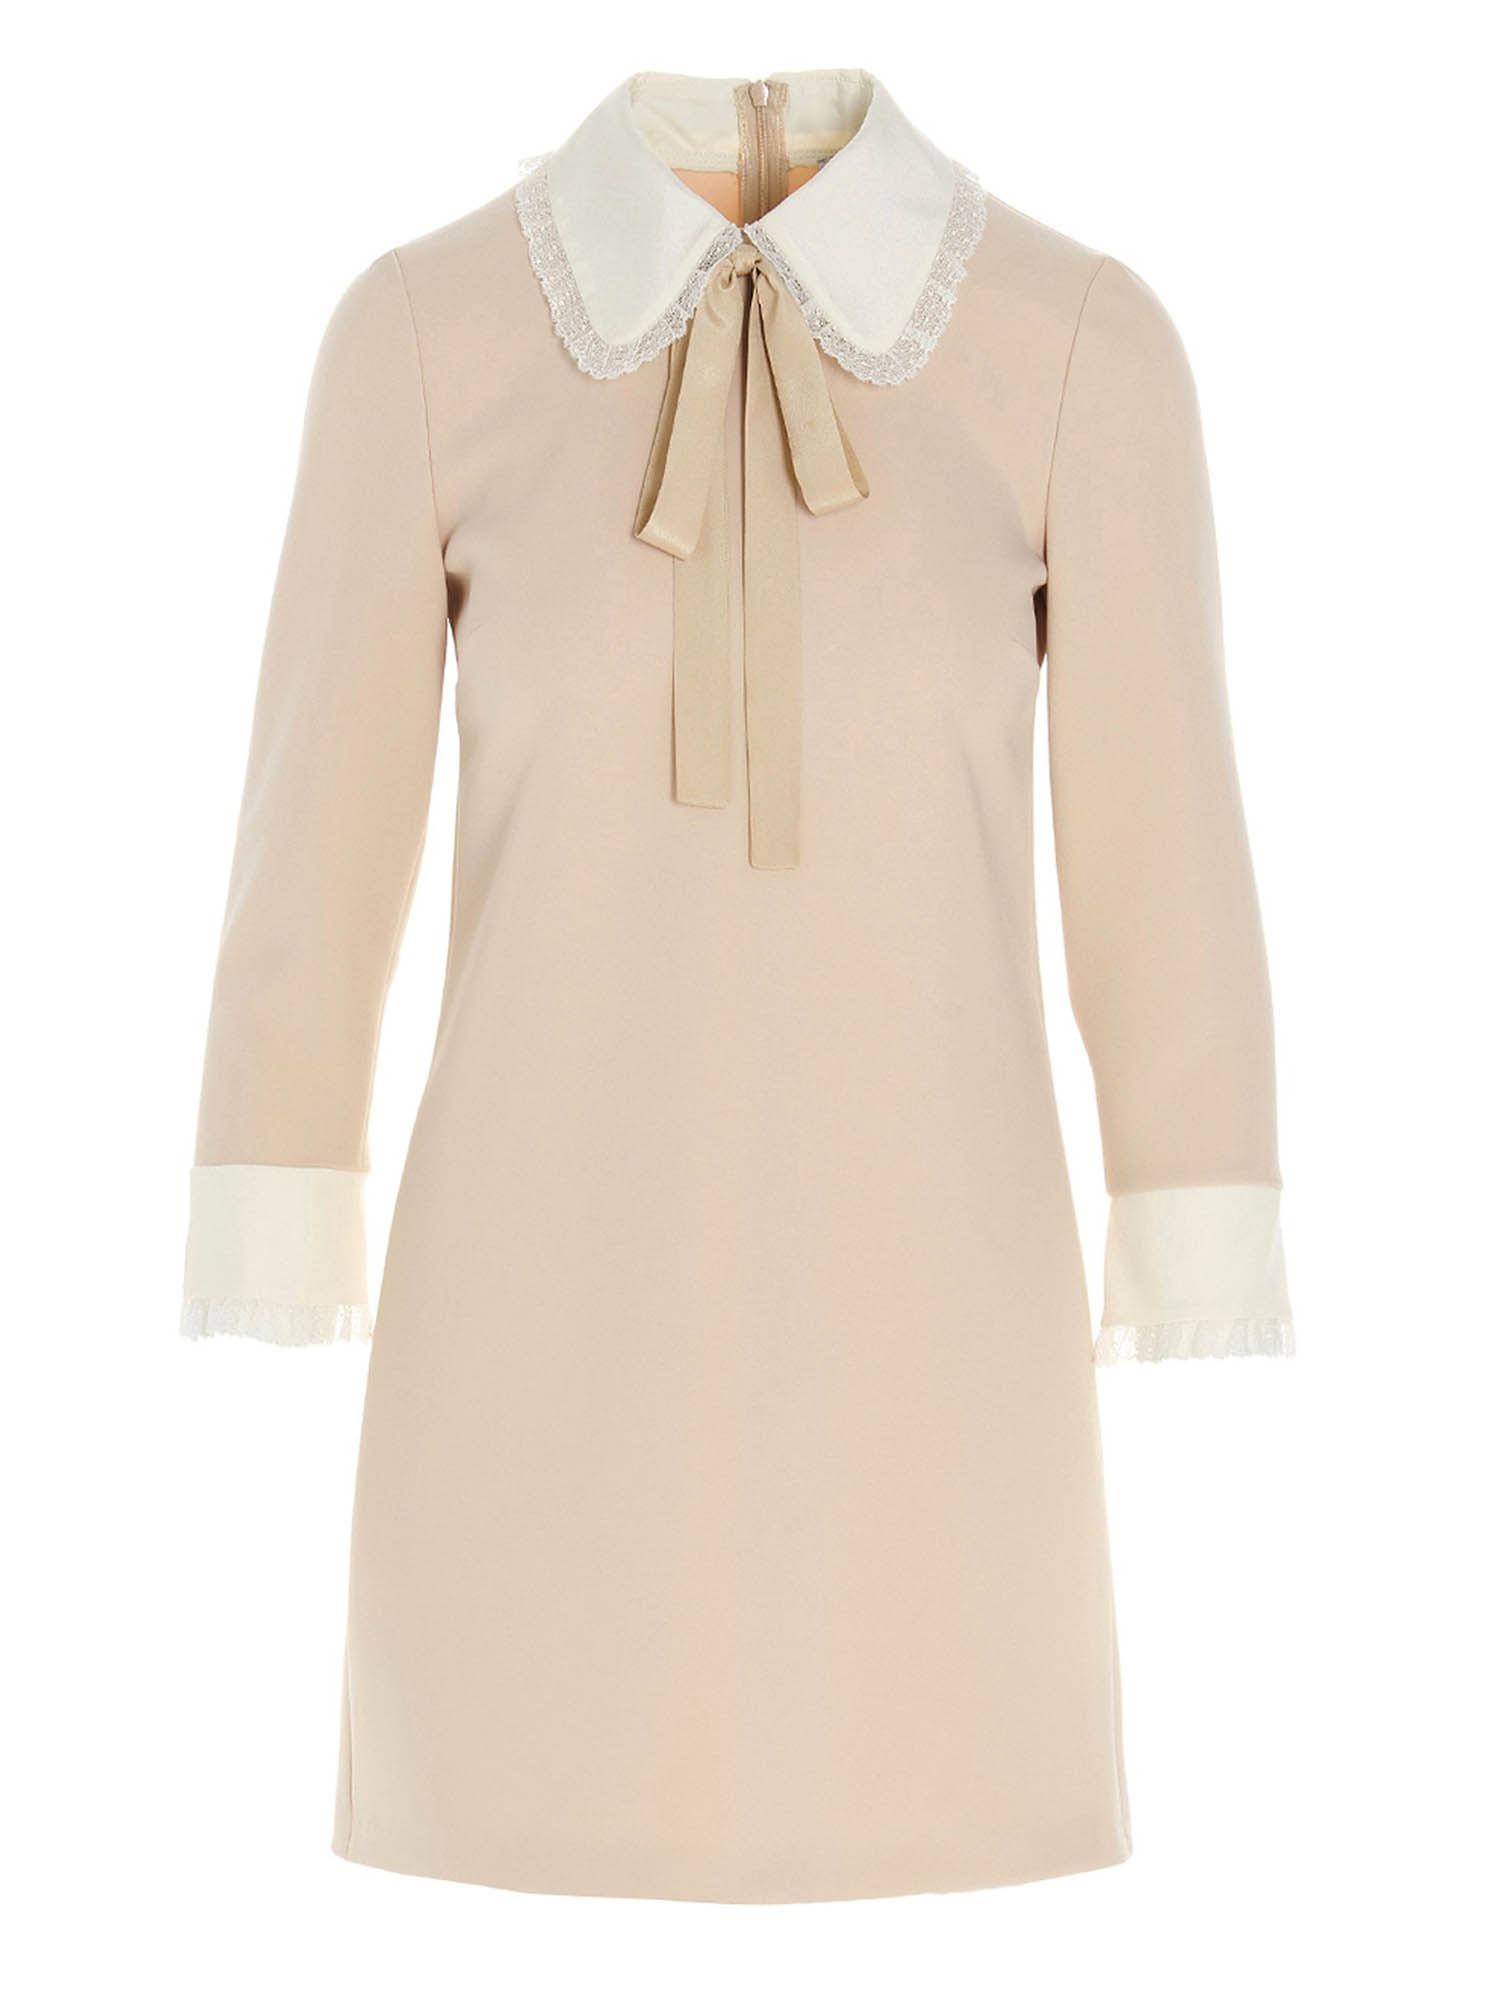 Red Valentino CONTRAST COLLAR DRESS IN BEIGE